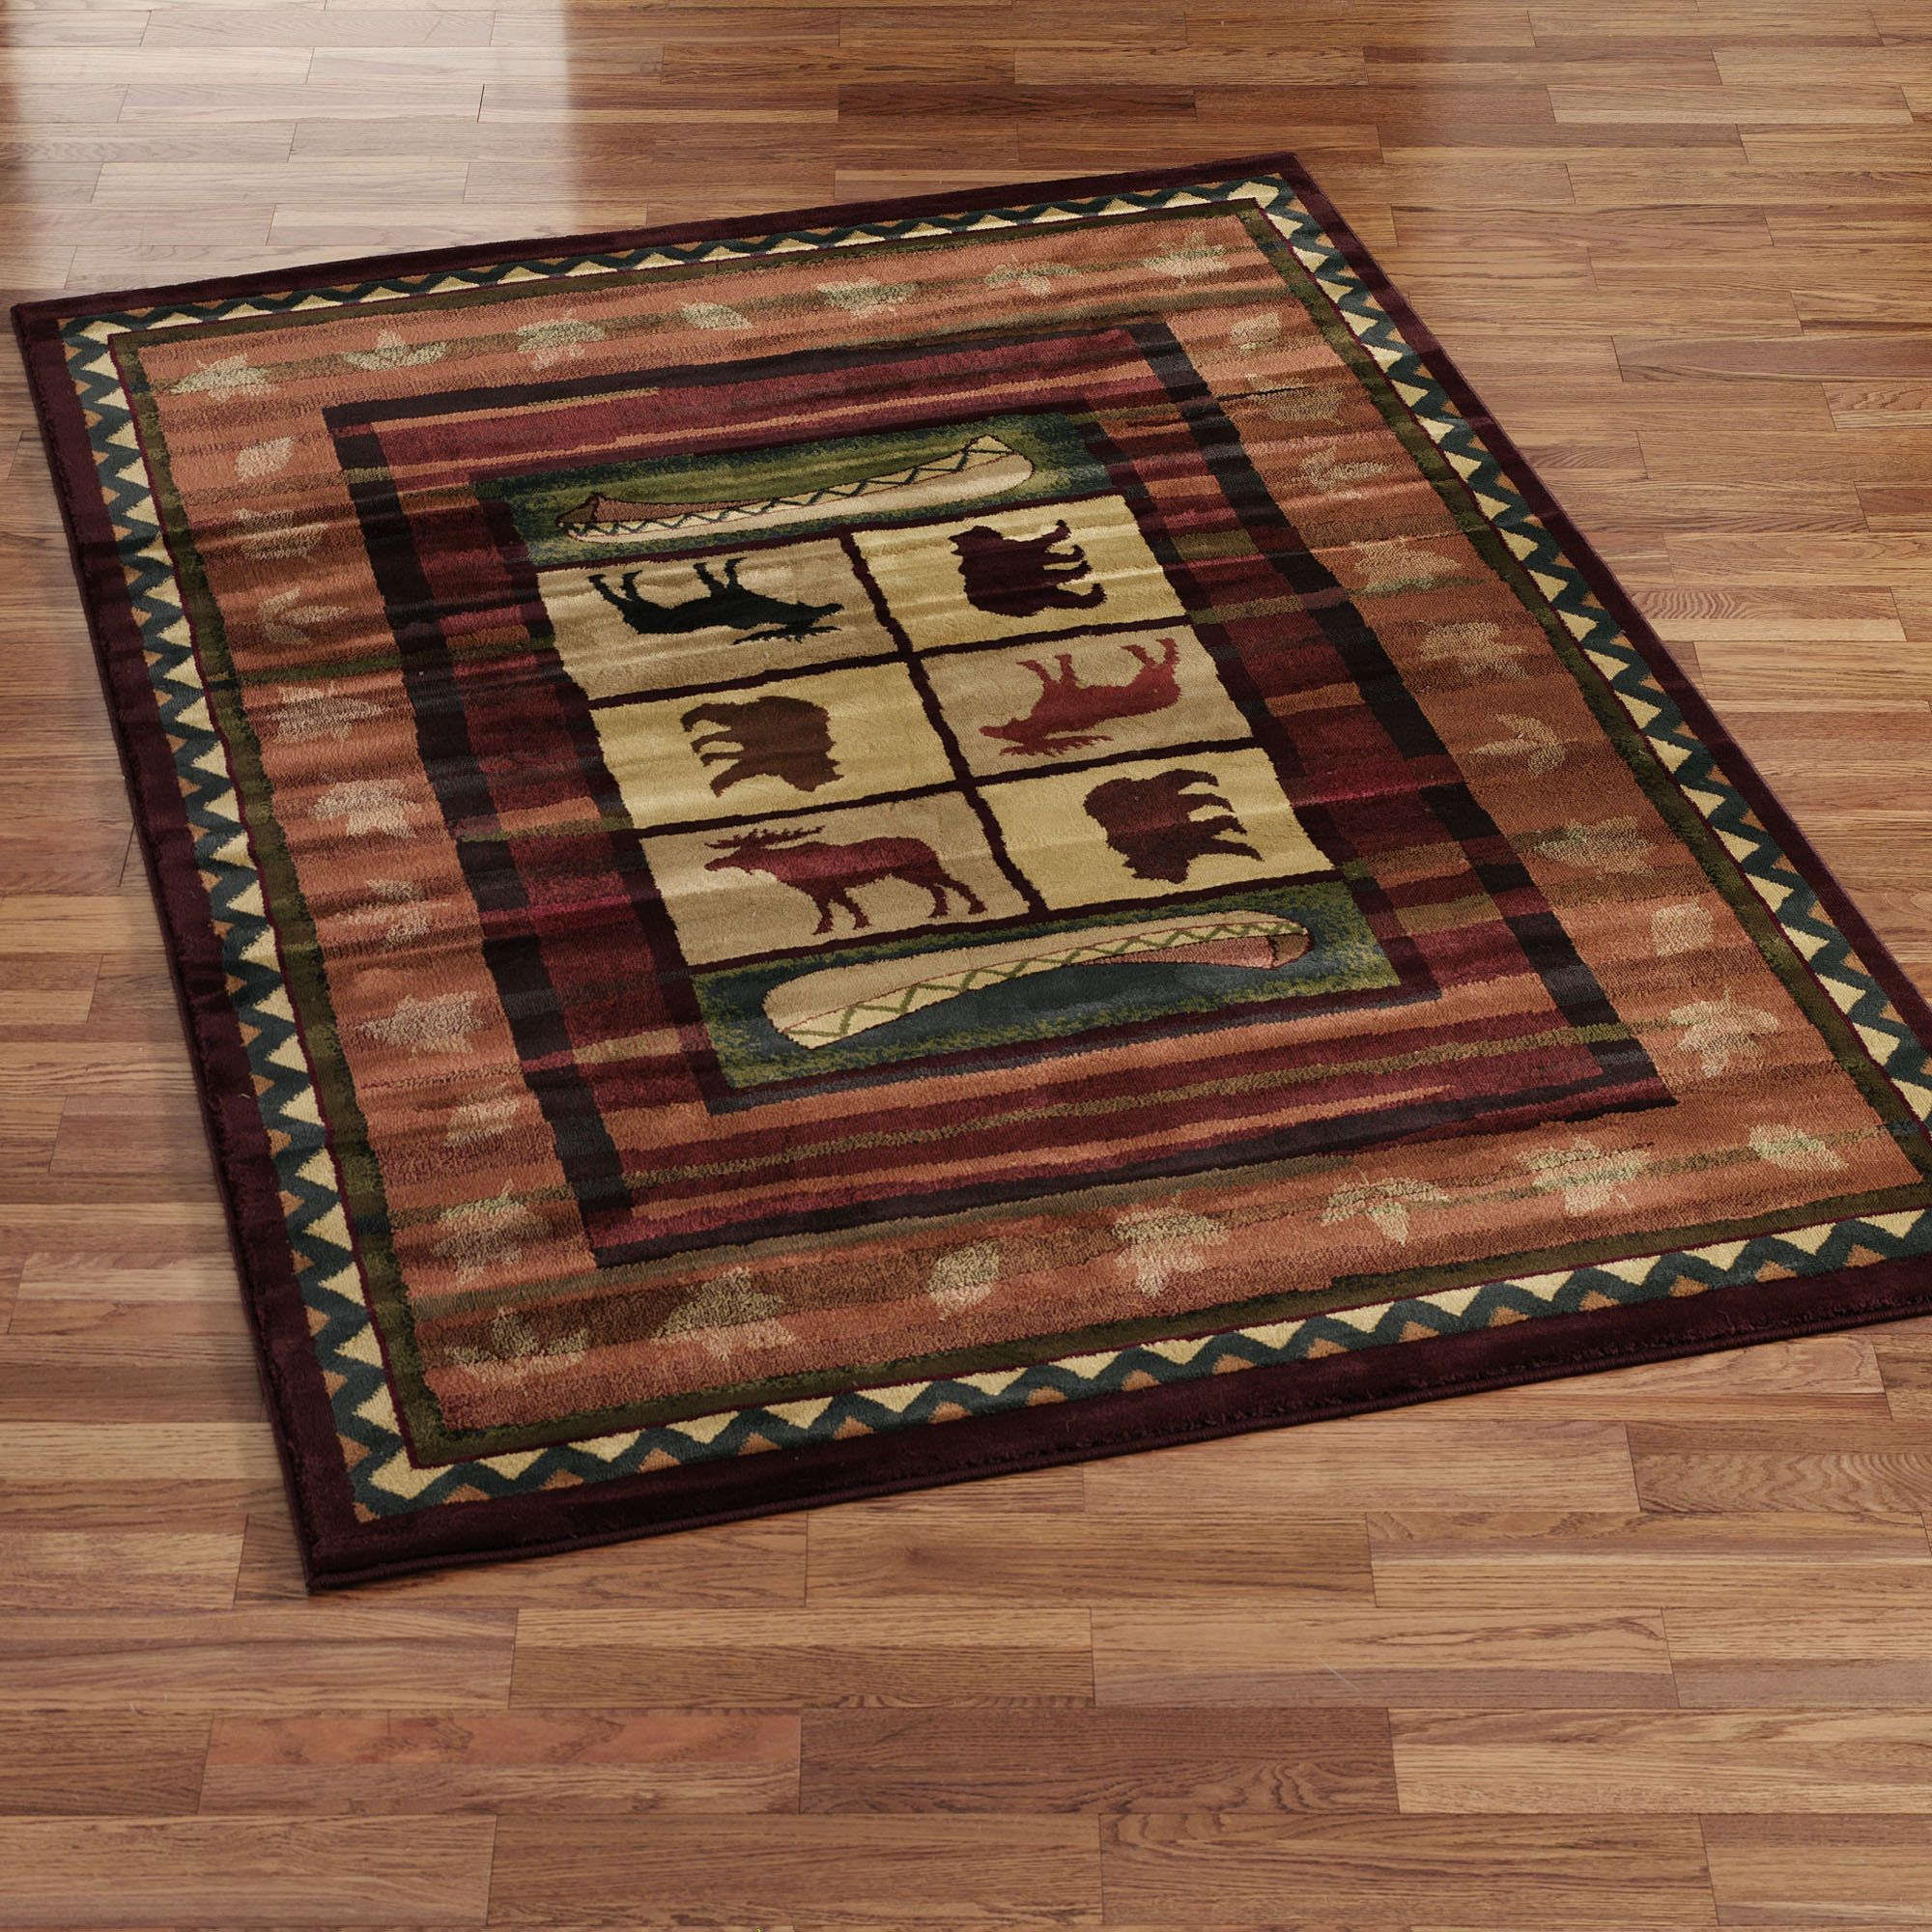 cuenca western rugs spanish carpets carpet antique farnham rug